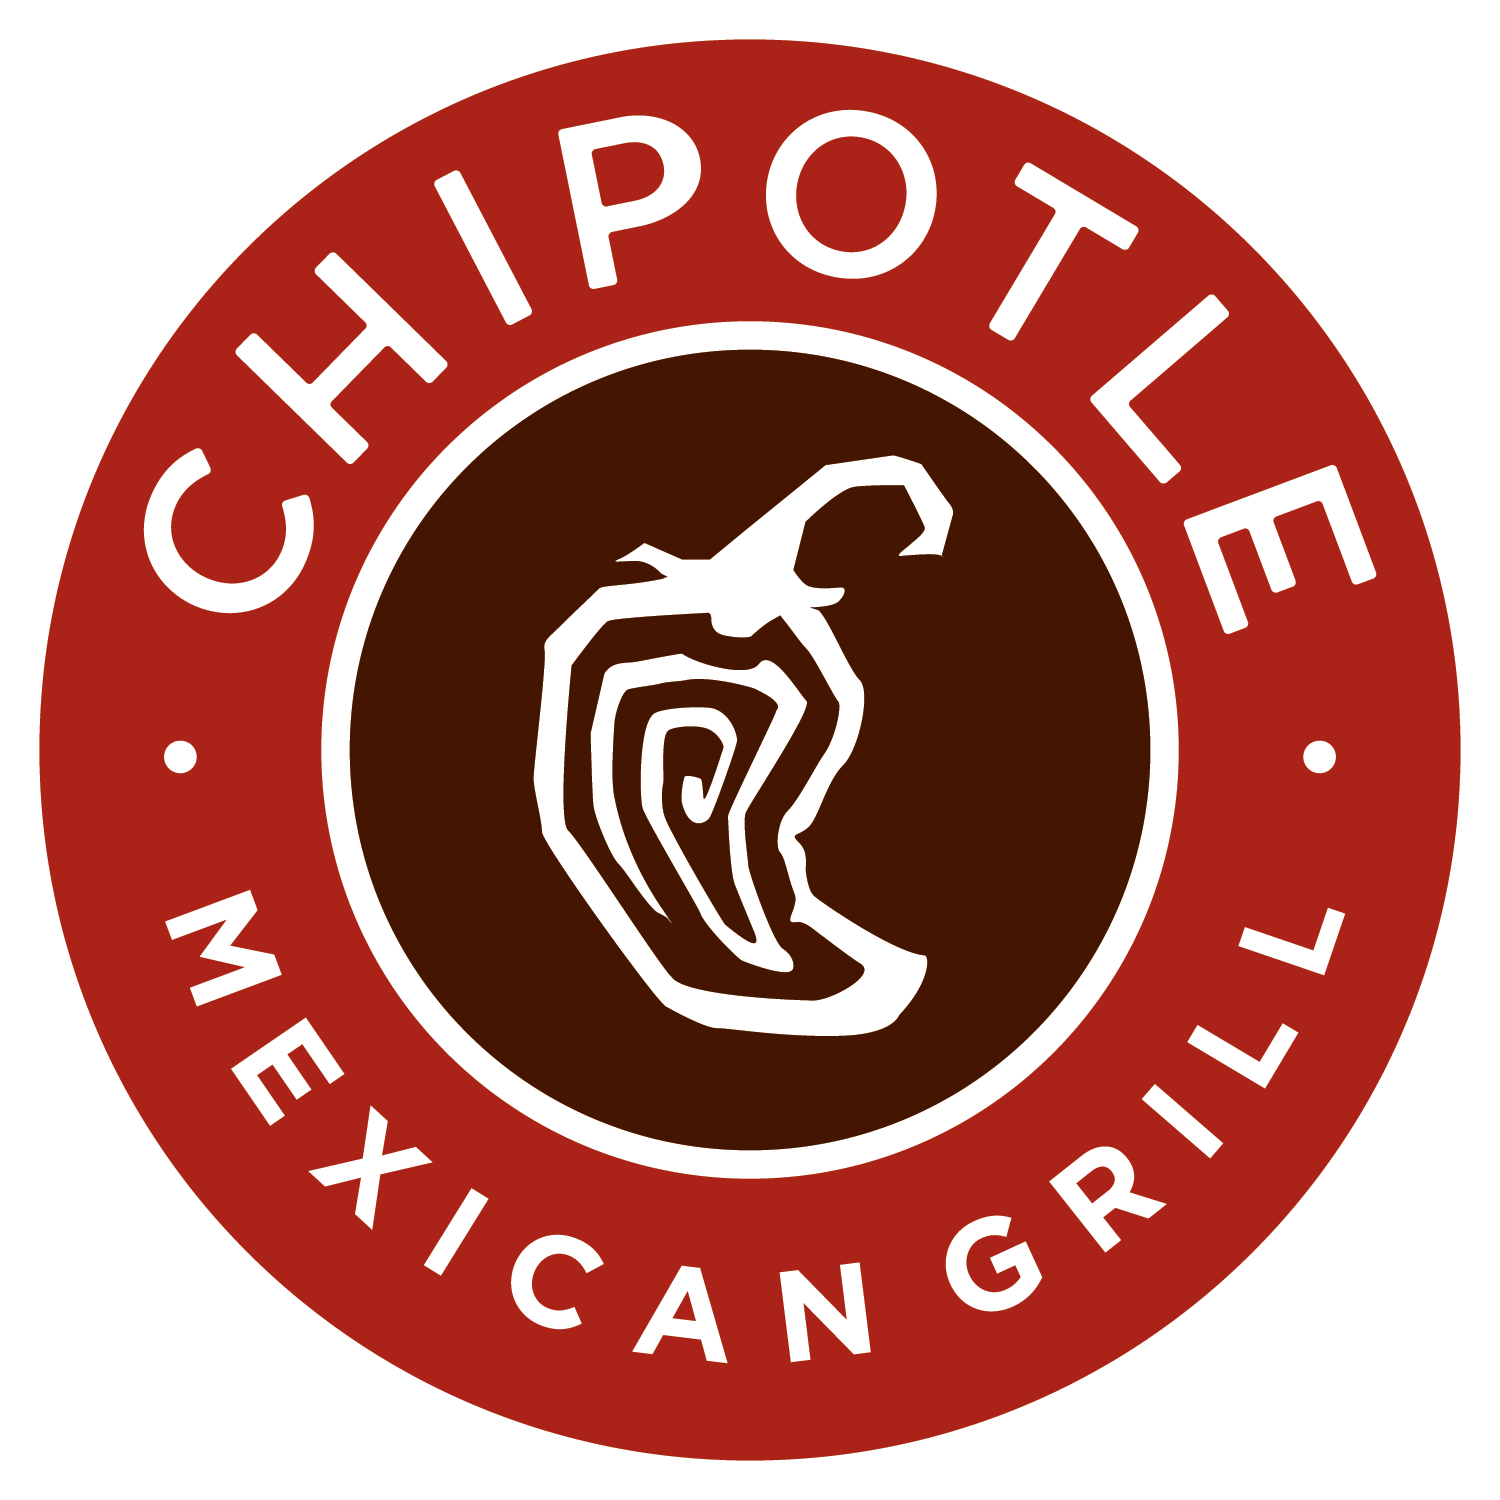 Chipotle, United Way to Raise Funds For Hurricane Florence Recovery